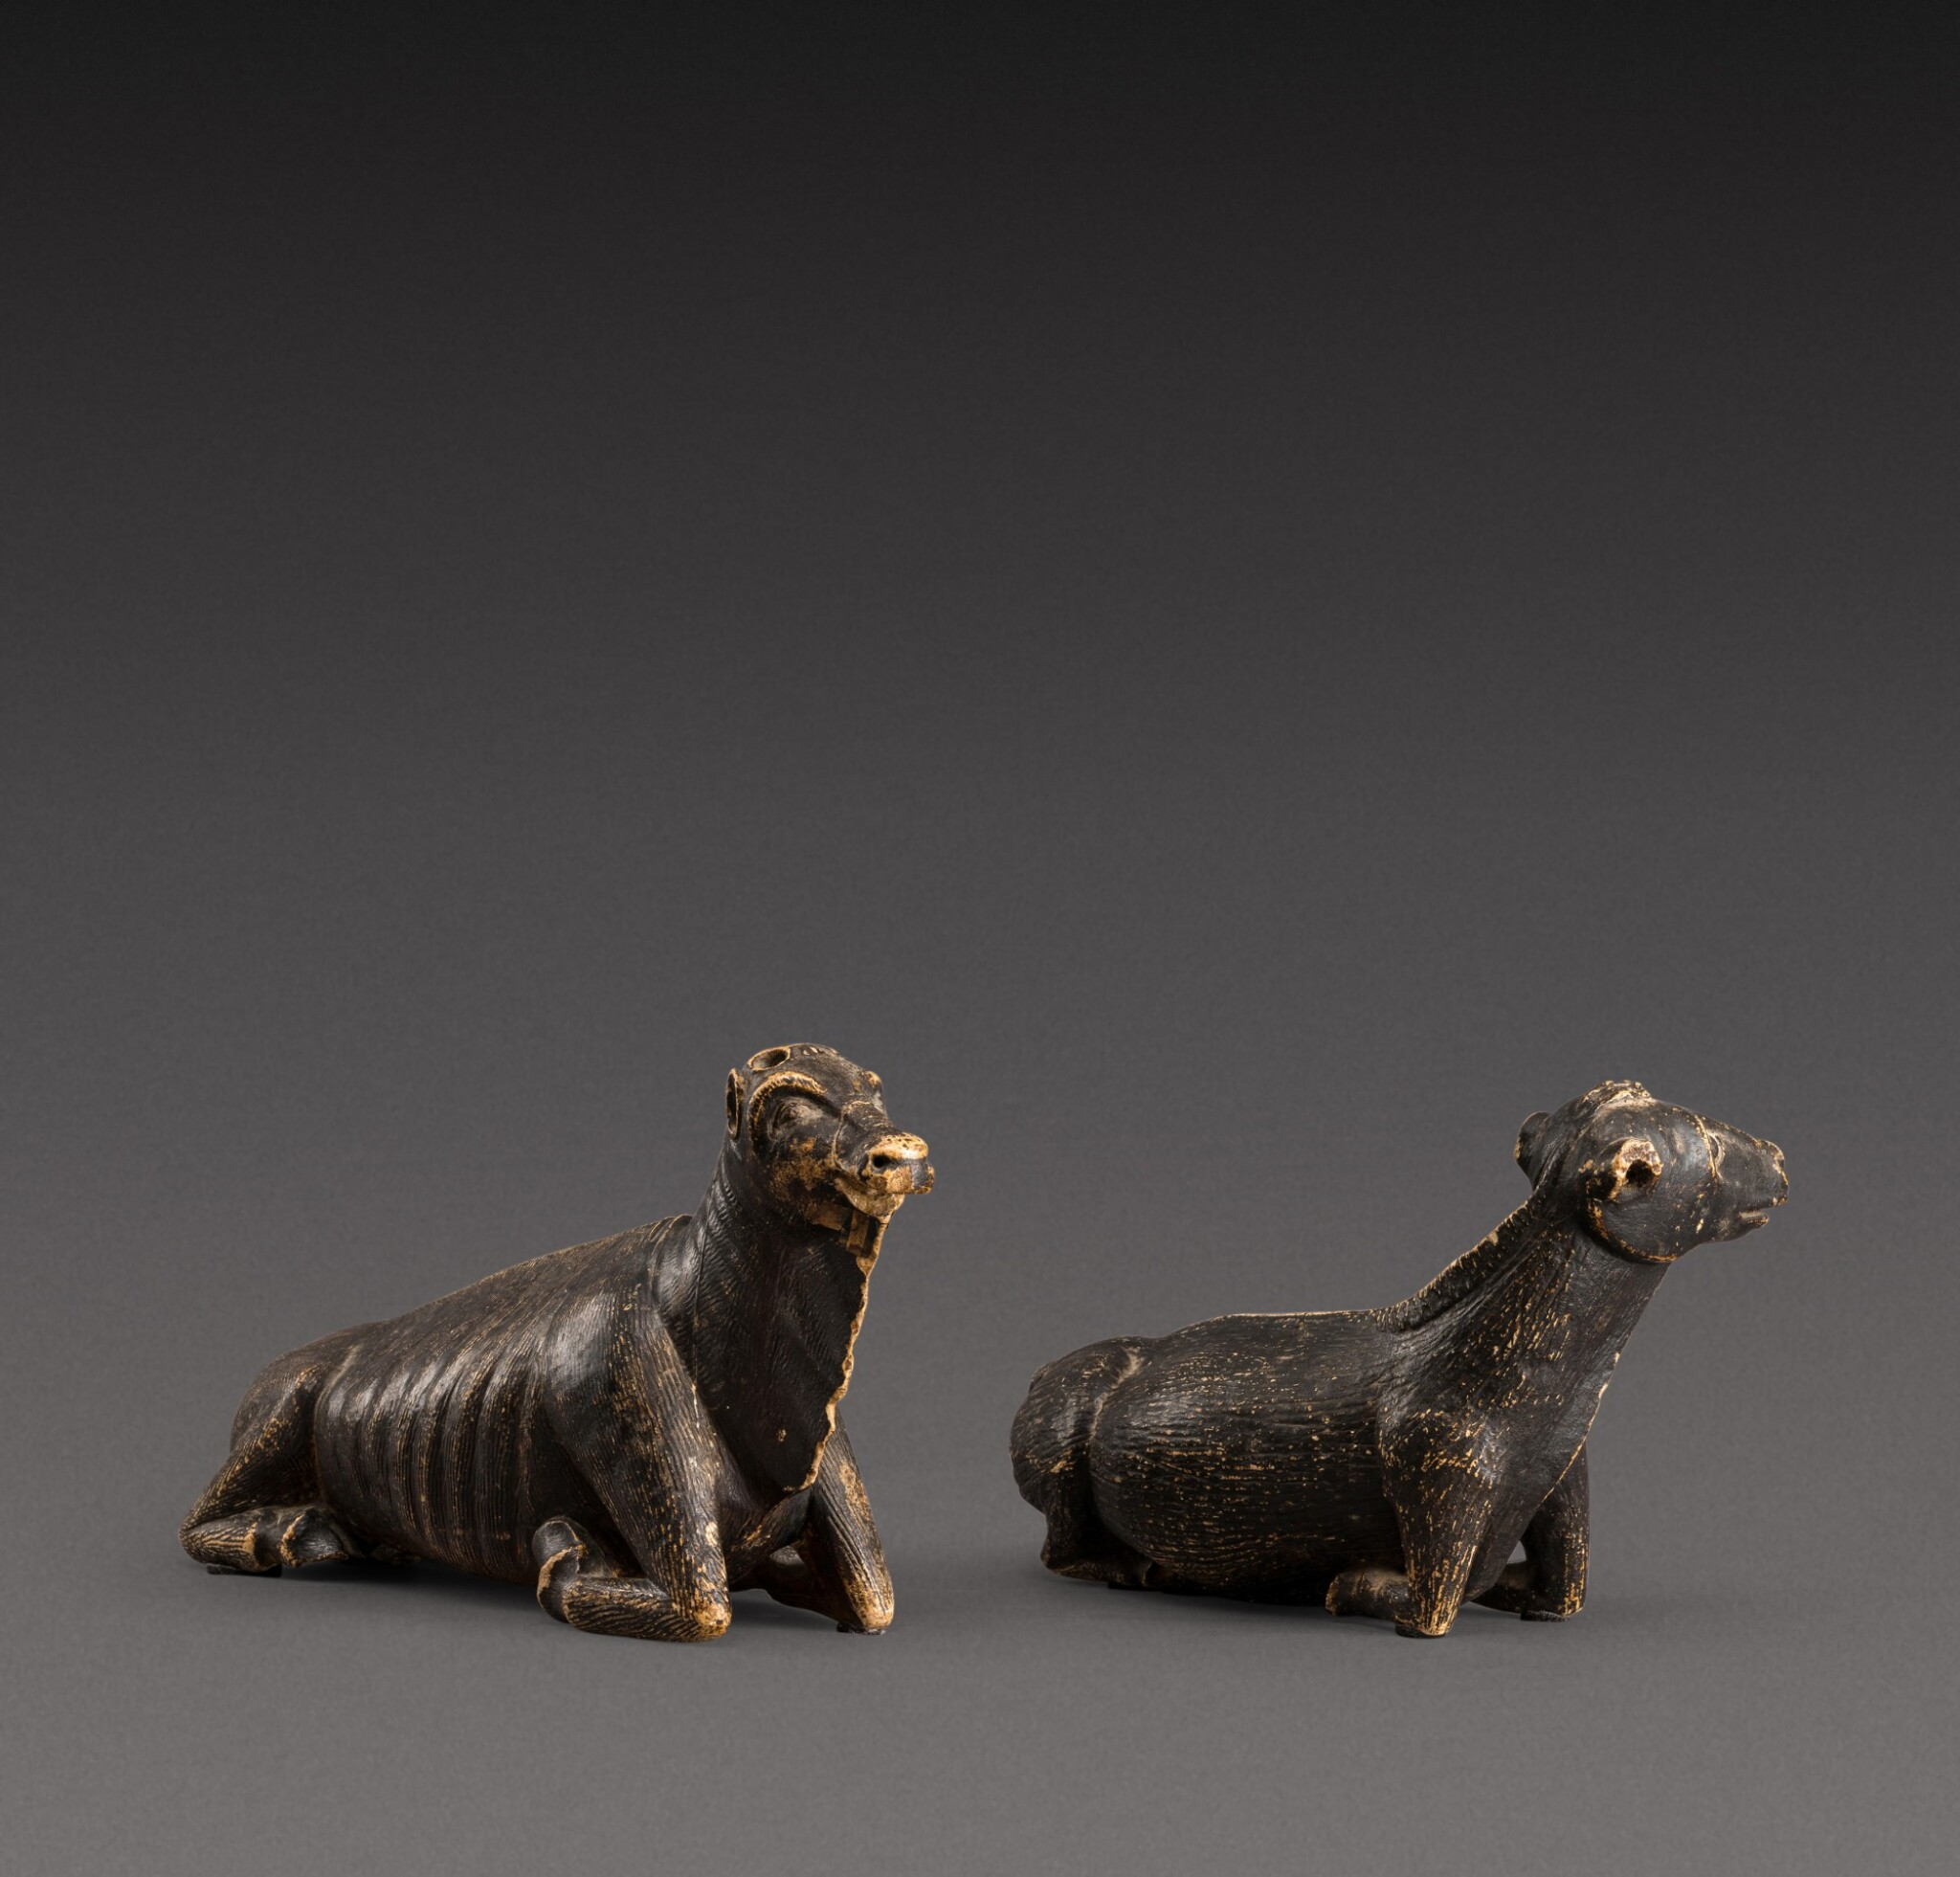 View 1 of Lot 157. Indo-European, possibly 17th century | Pair of Animals.